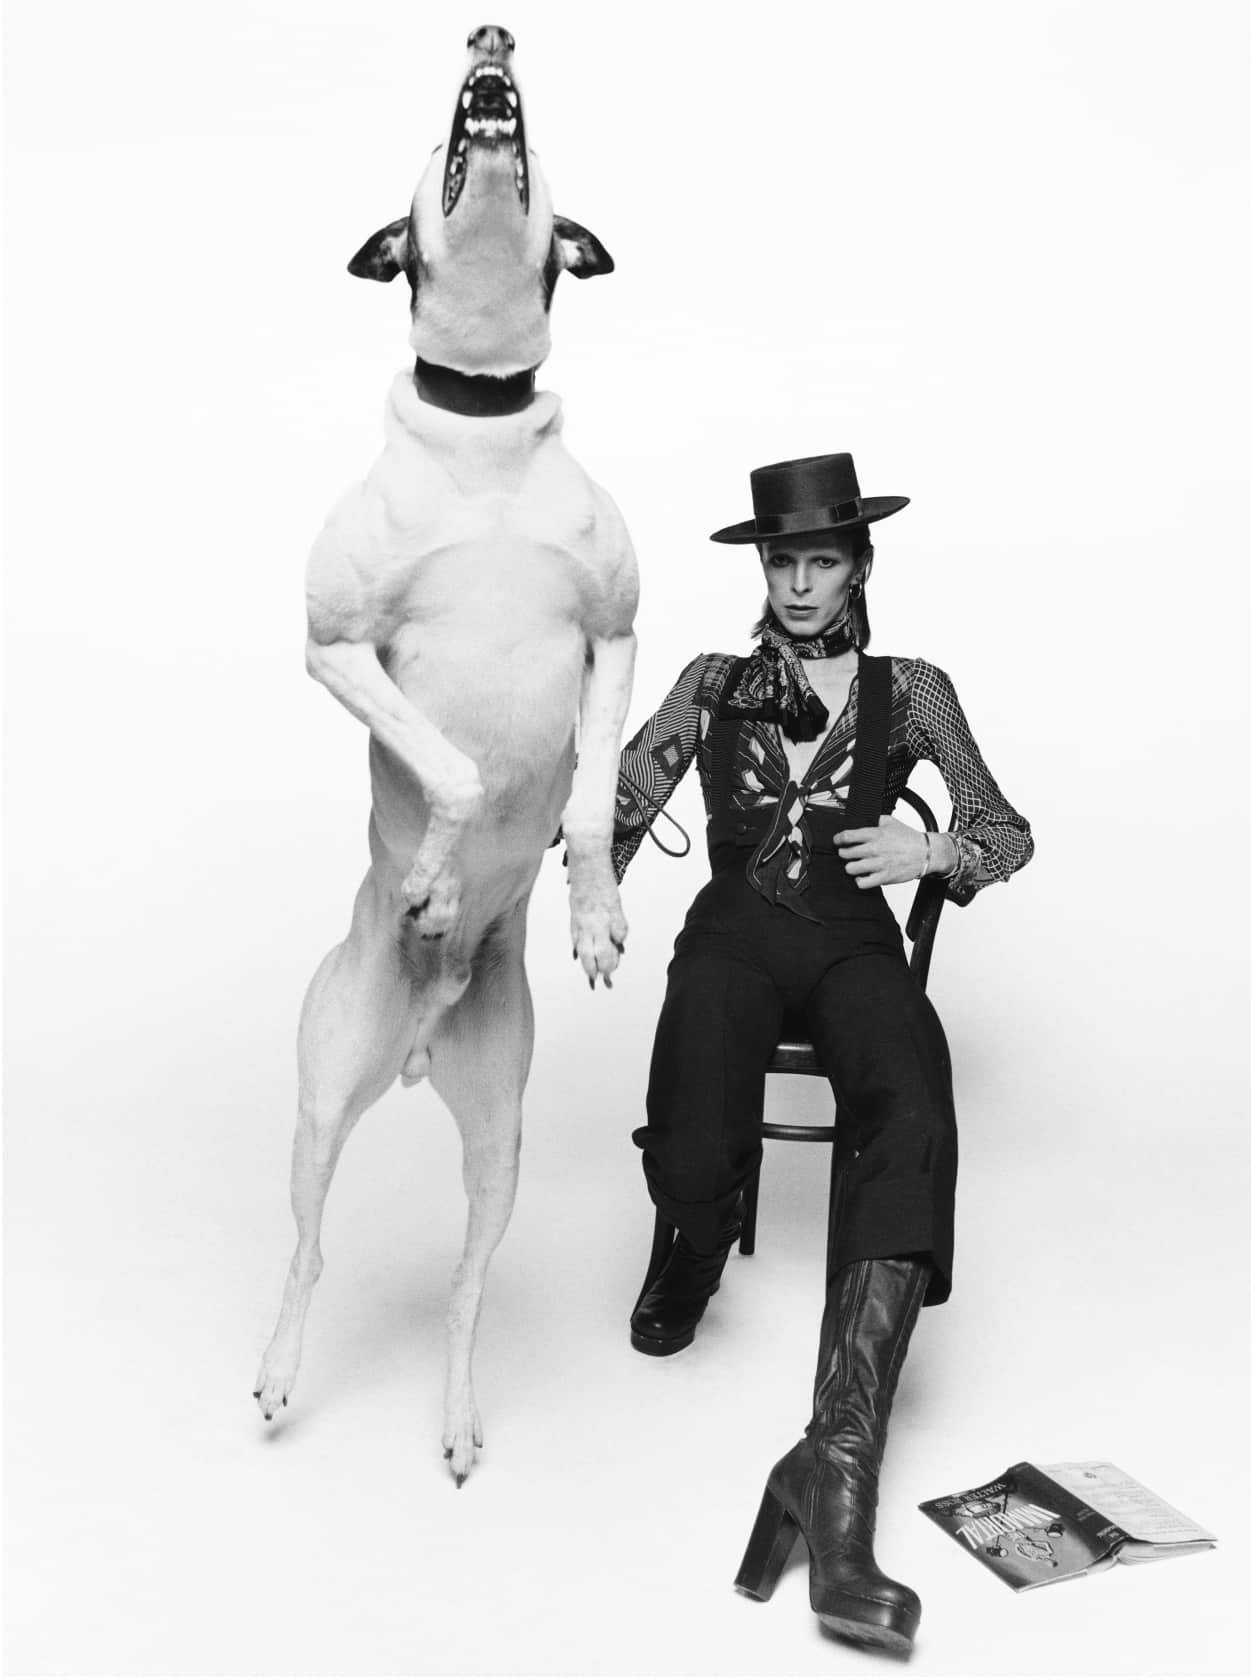 Terry O'Neill David Bowie in 'Diamond Dogs' Lifetime Gelatin Silver Print